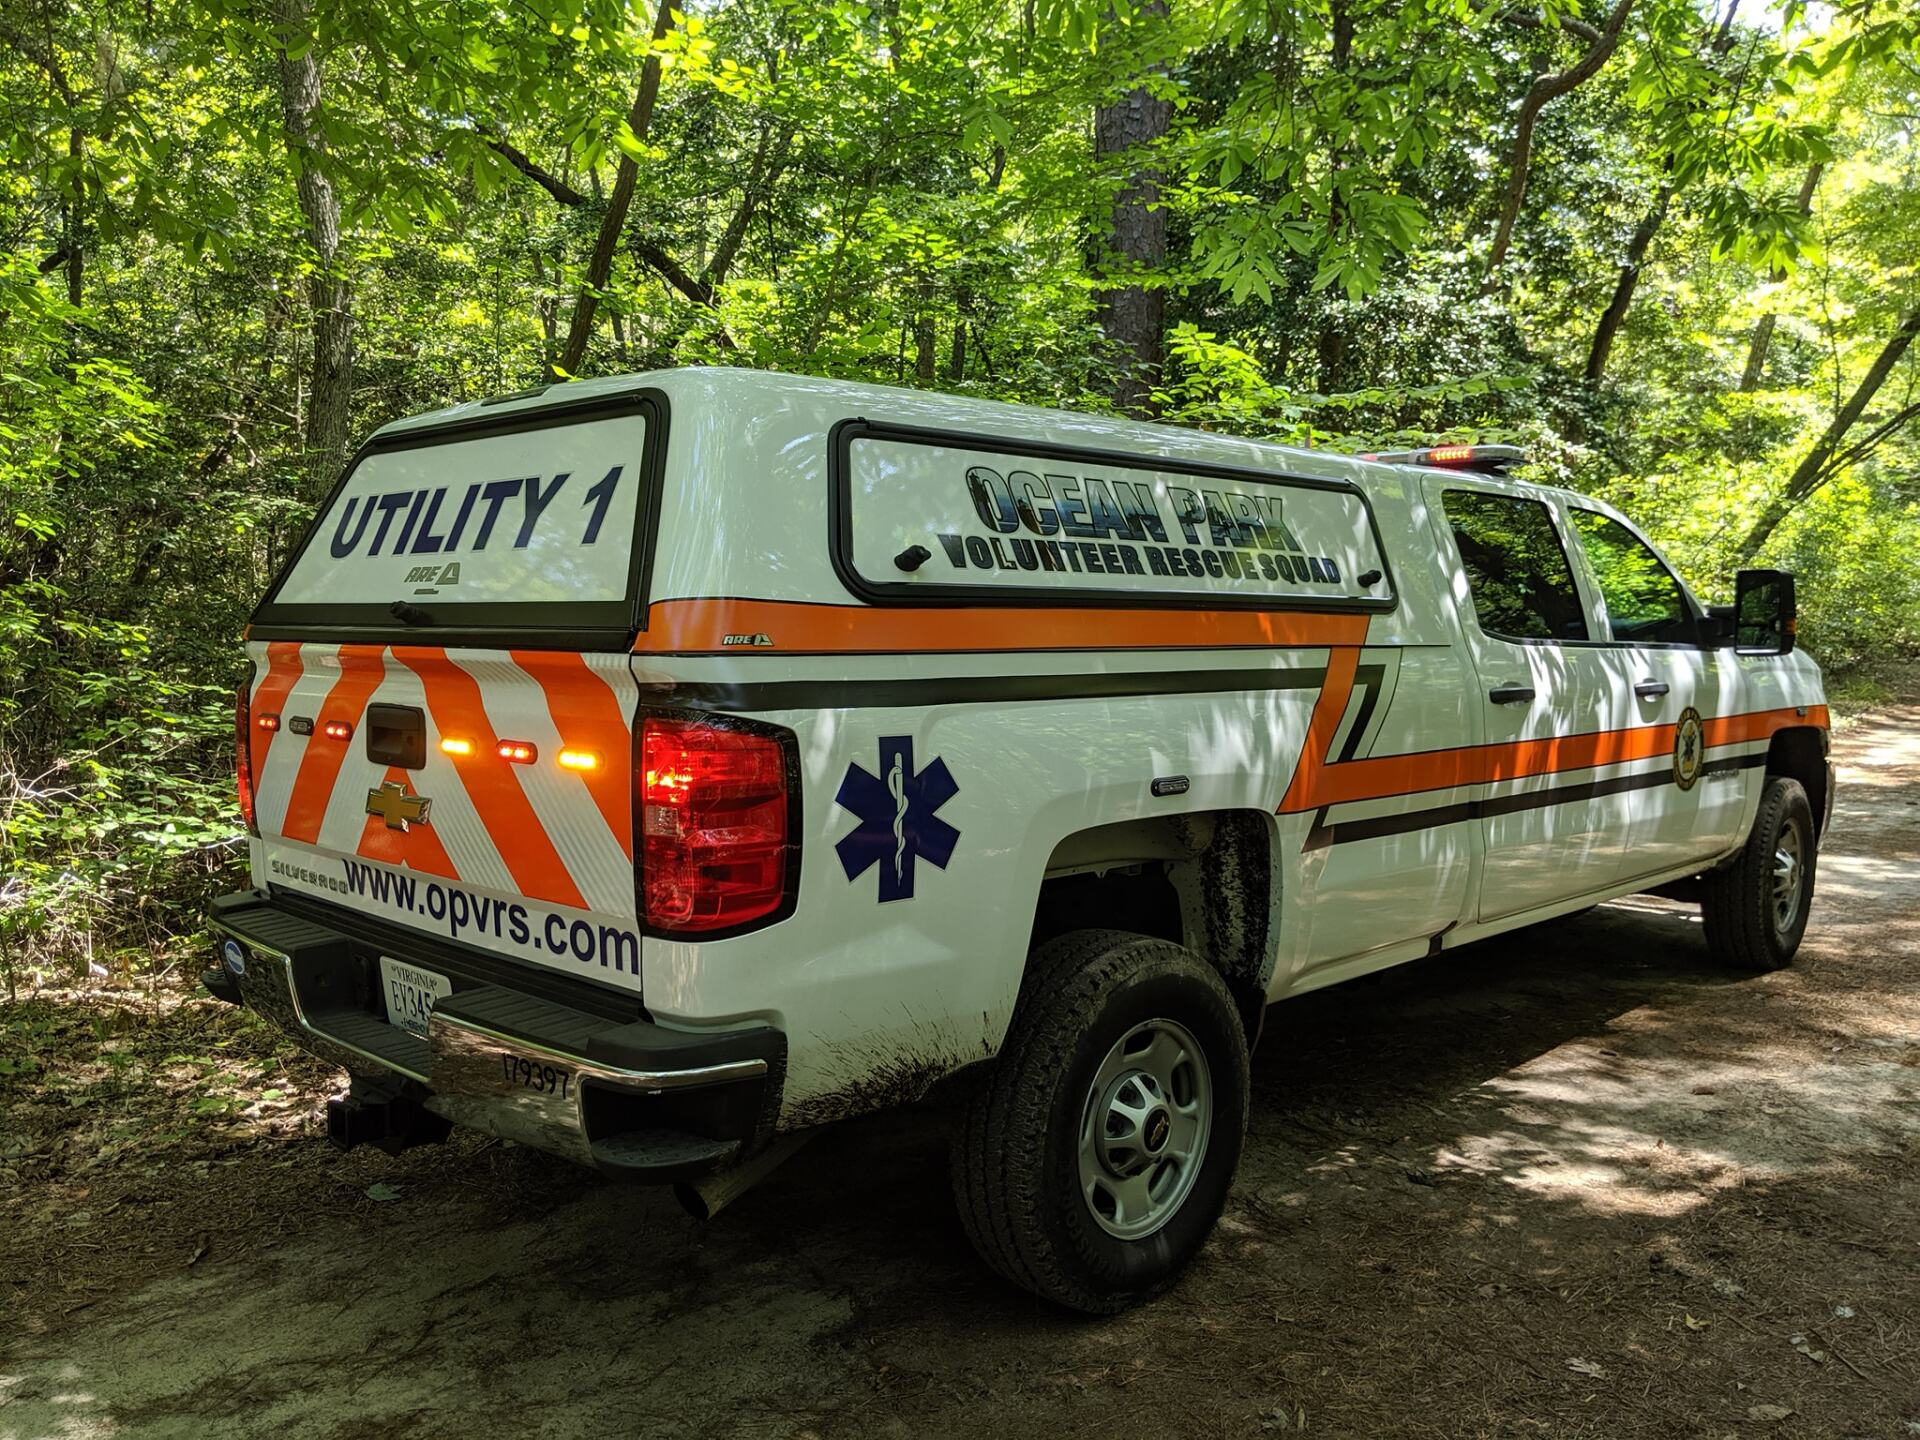 Photos: Multiple agencies help rescue person at First Landing StatePark